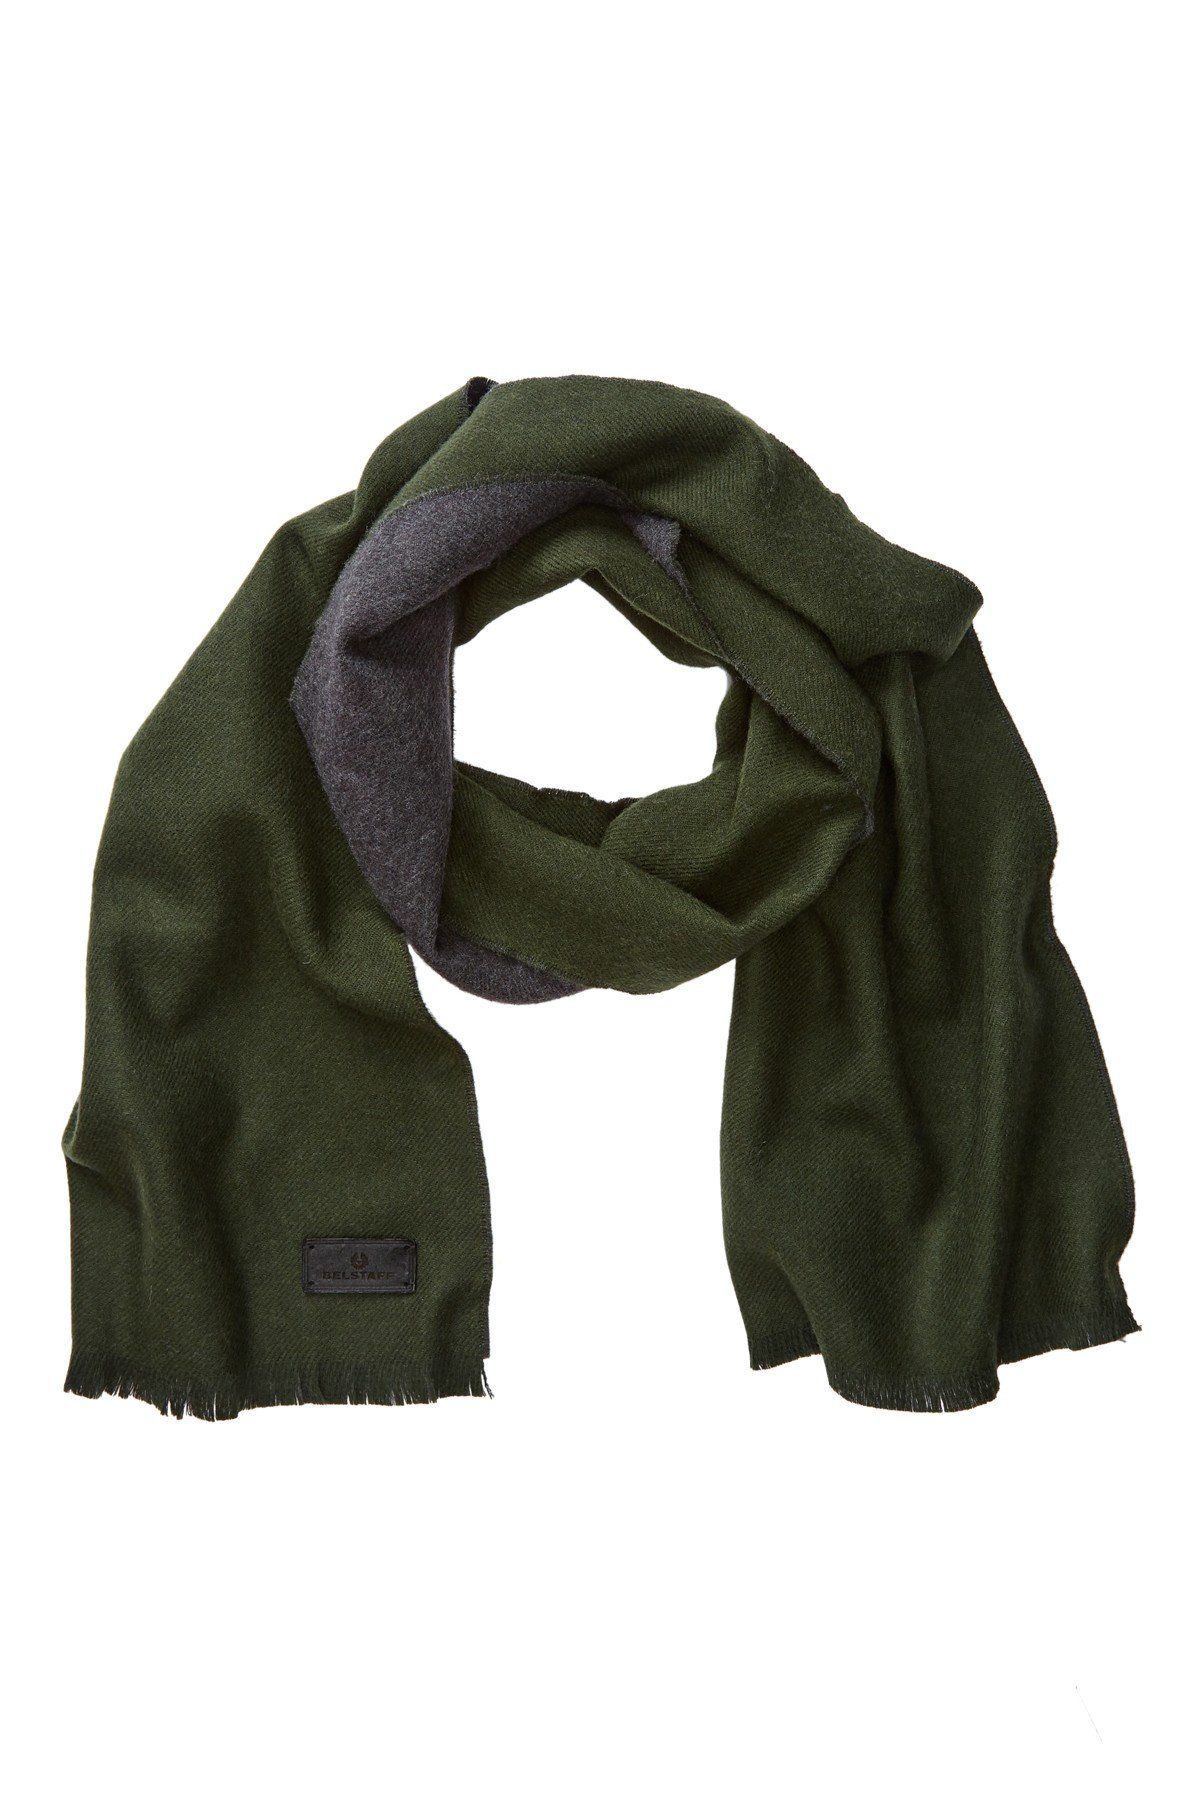 75241d66b69 Signature Solid Double Face Wool Scarf Belstaff, Wool Scarf, Merino Wool,  Men's Fashion